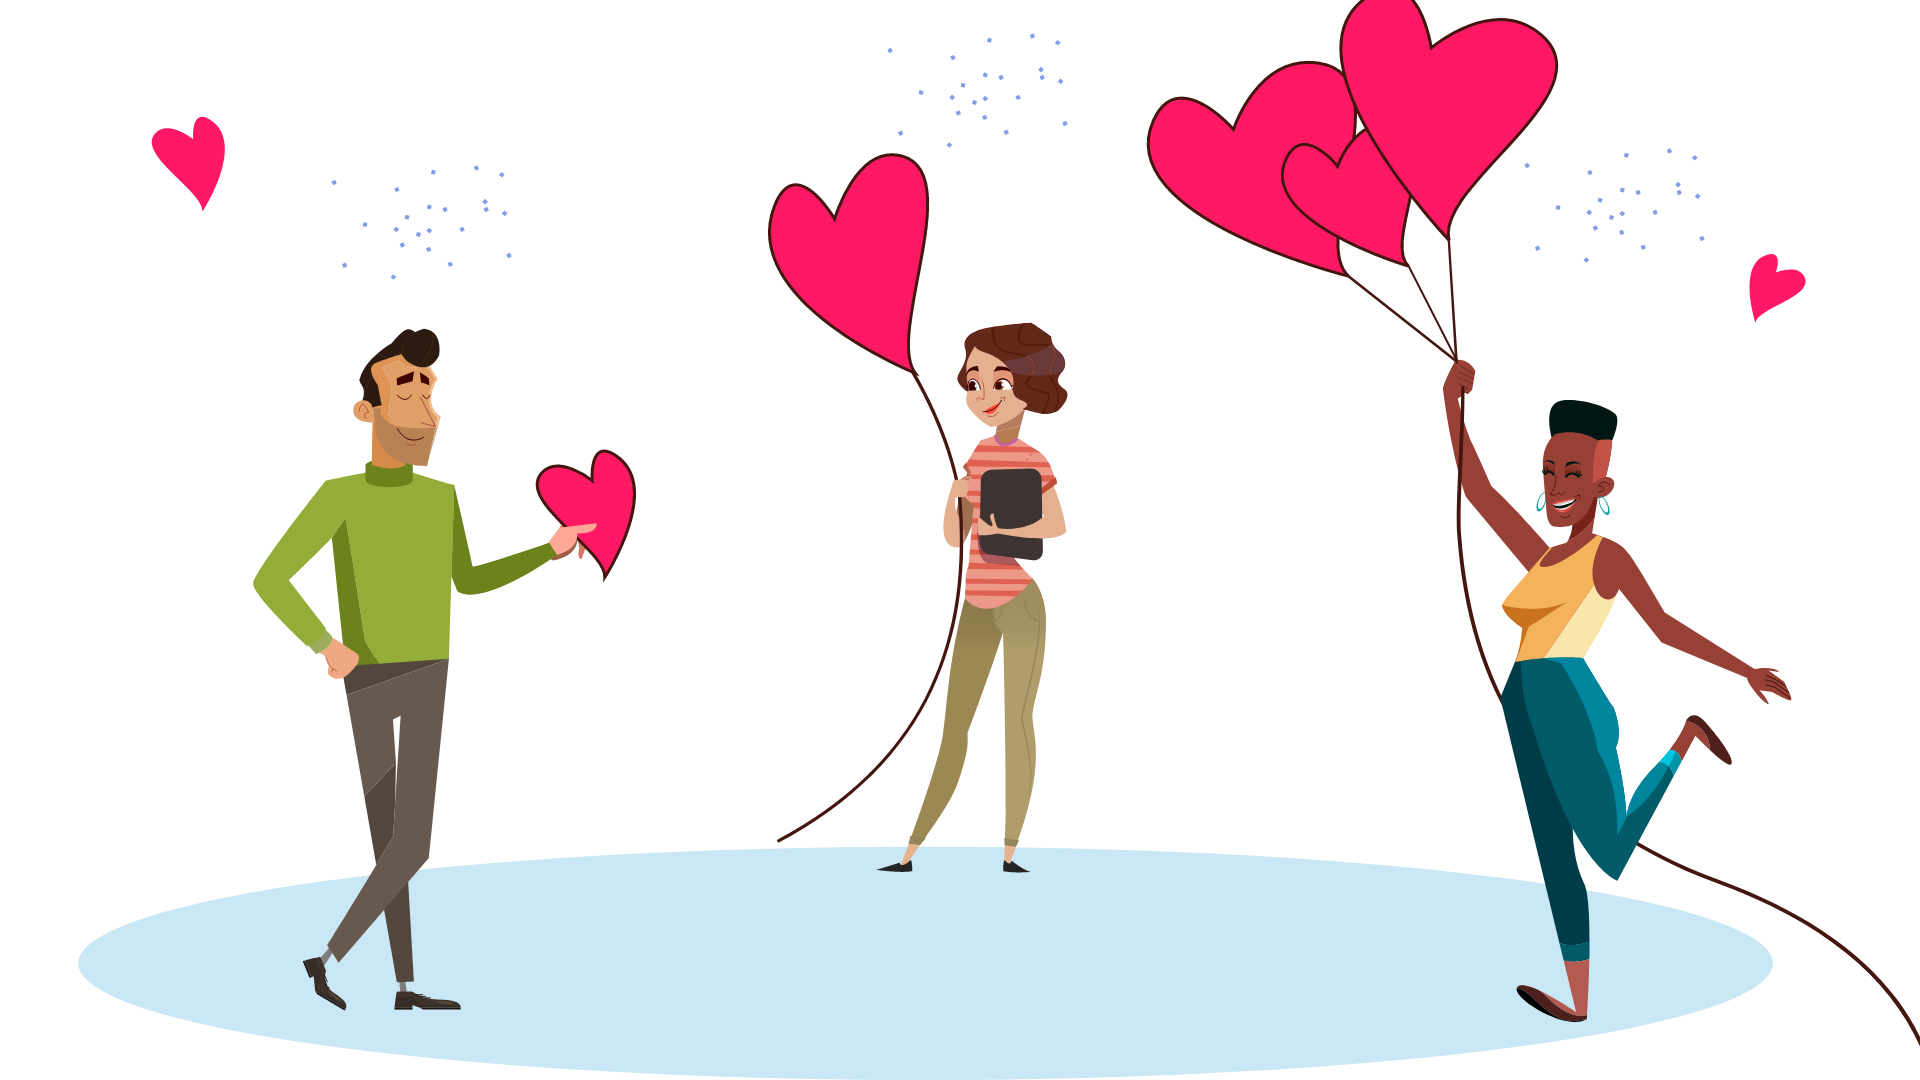 People holding hearts and heart-shaped balloons. Illustration.